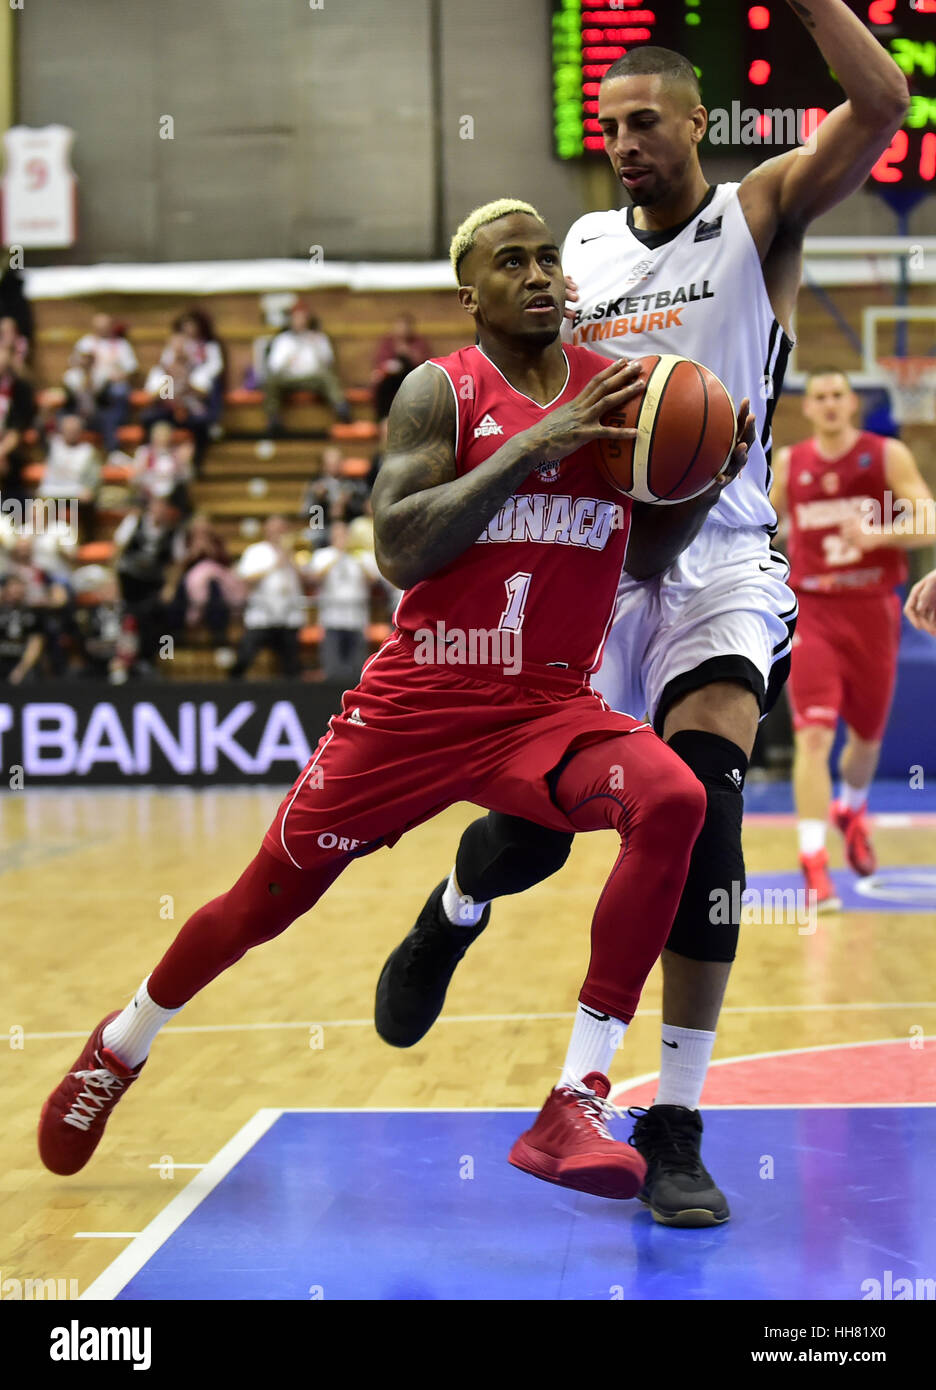 Nymburk, Czech Republic. 17th Jan, 2017. From left Dee Bost of Monaco and Diamon Simpson of Nymburk in action during - Stock Image